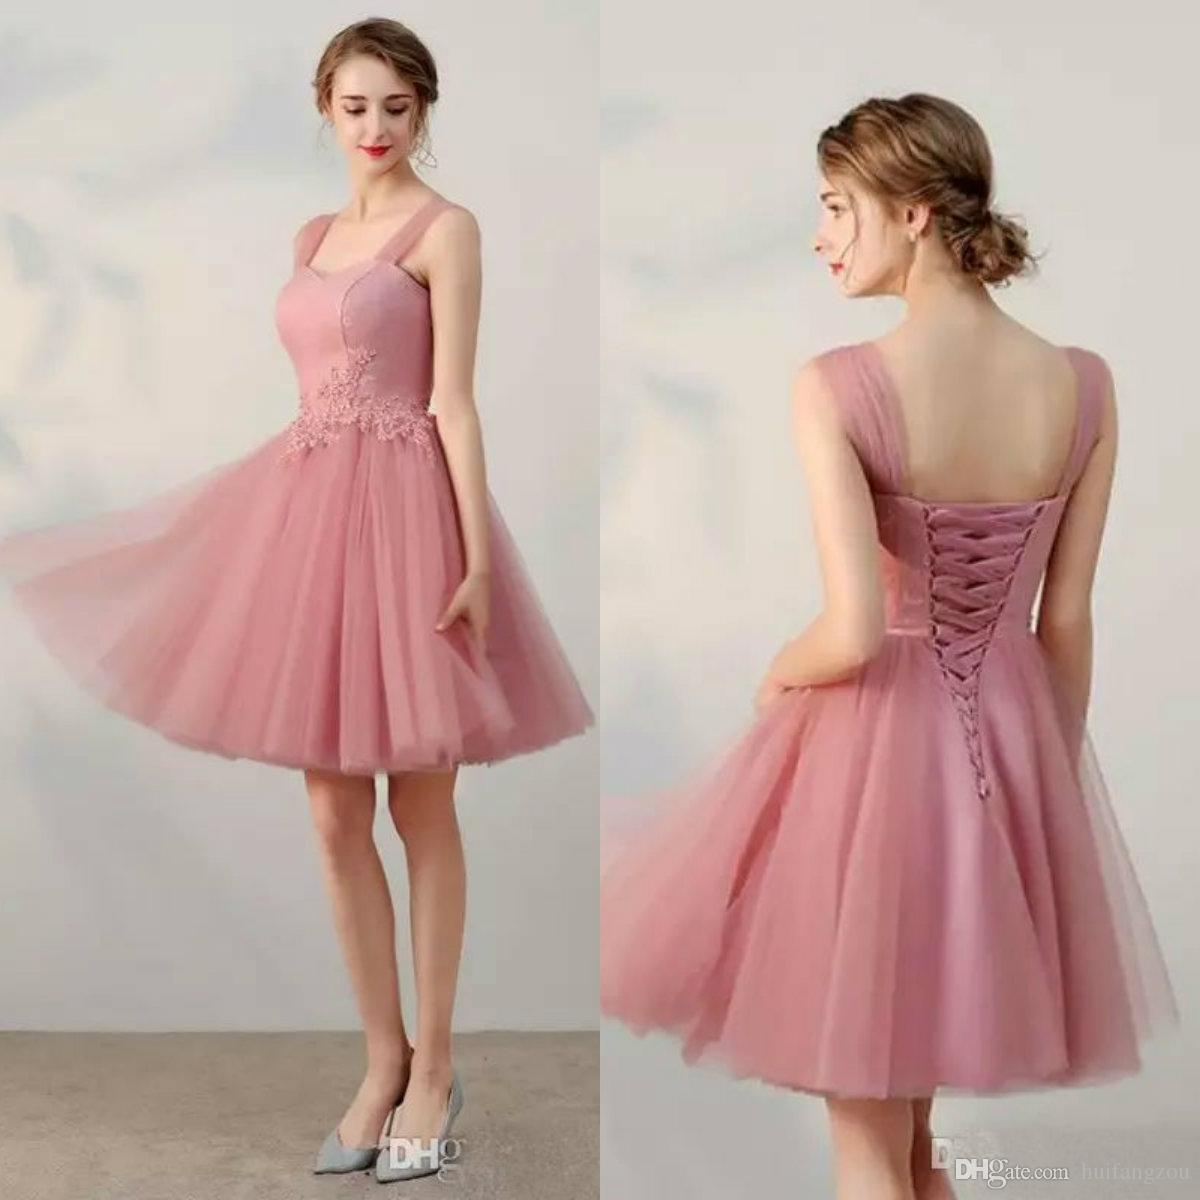 89bf0450396 2019 Pink Short Prom Dresses Sheer Straps Lace Applique Beads Tulle  Bridesmaid Dress Custom Made Homecoming Dresses Formal Party Gowns Prom  Dresse S Prom ...